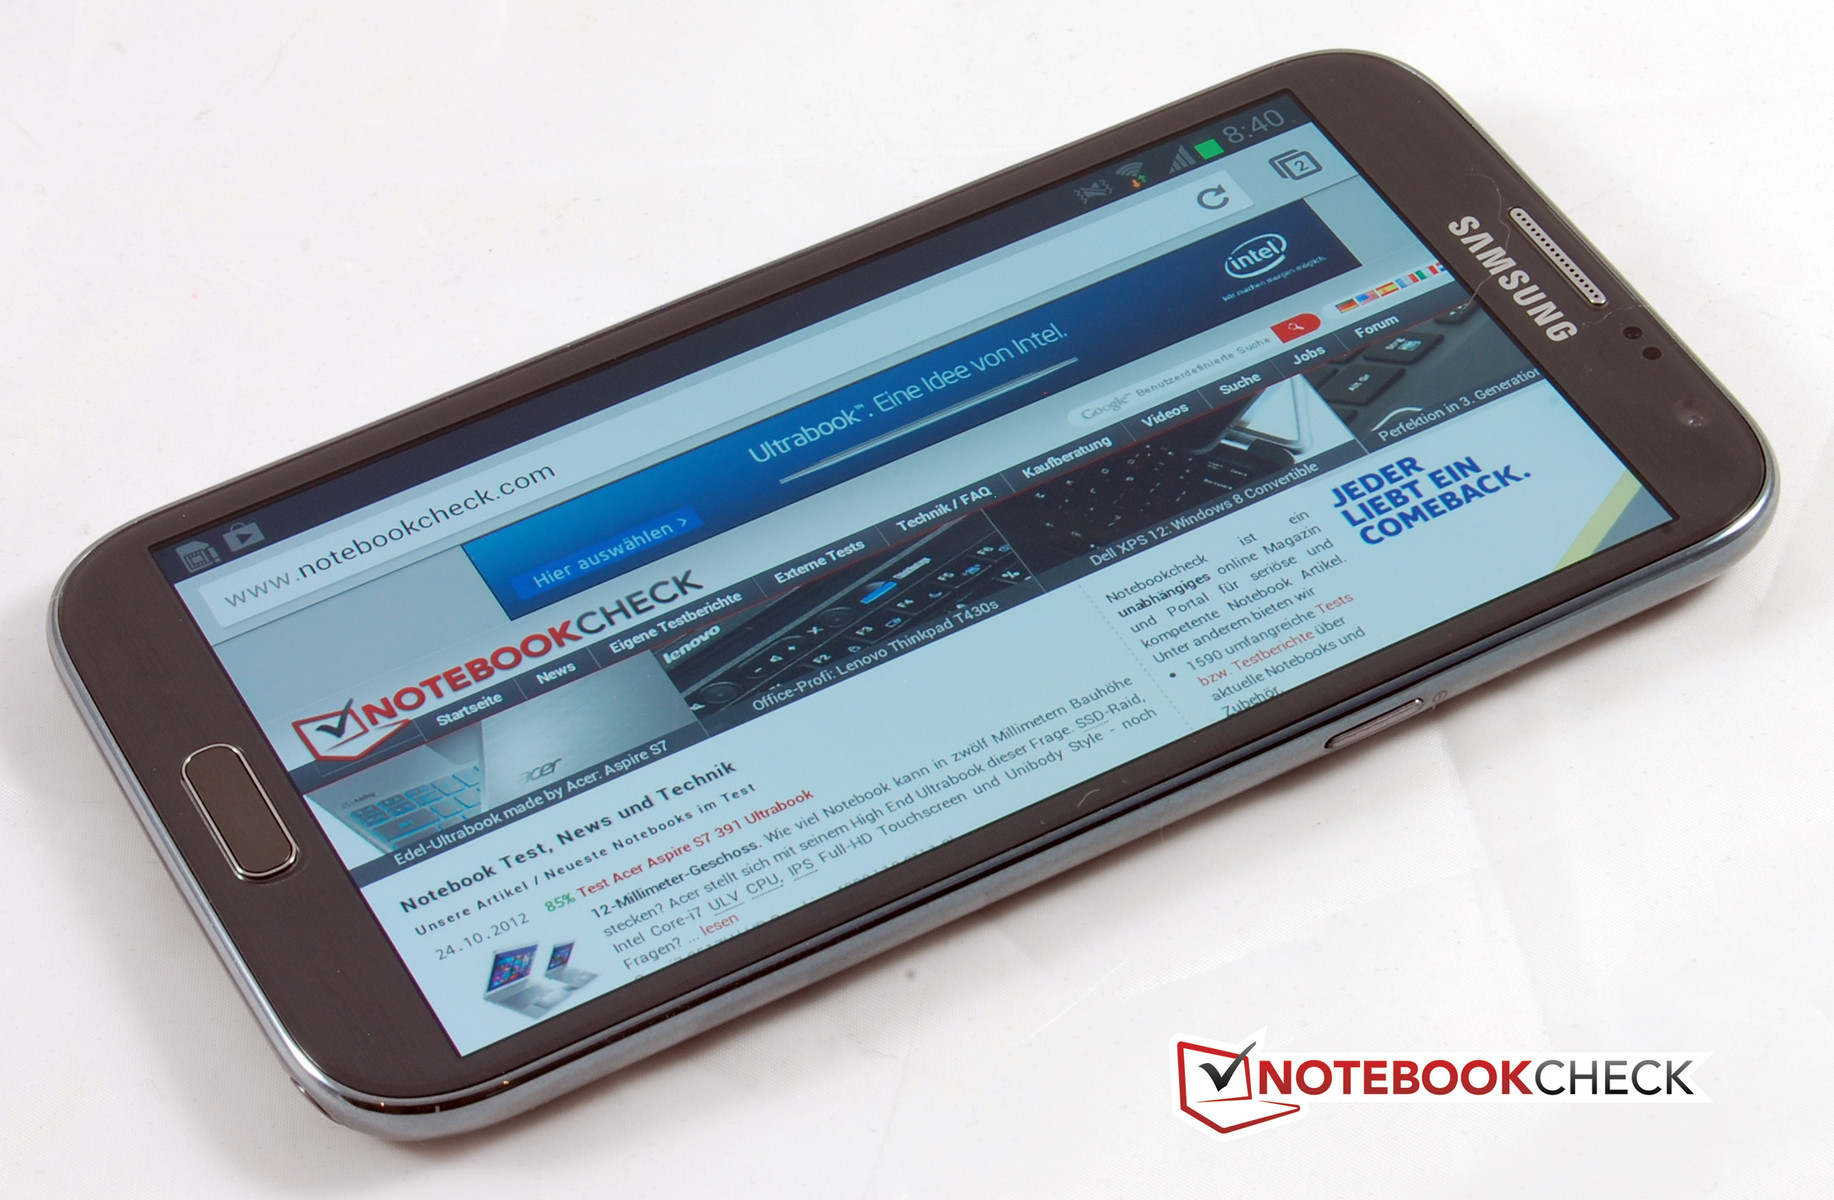 Review Samsung Galaxy Note II GT-N7100 Smartphone